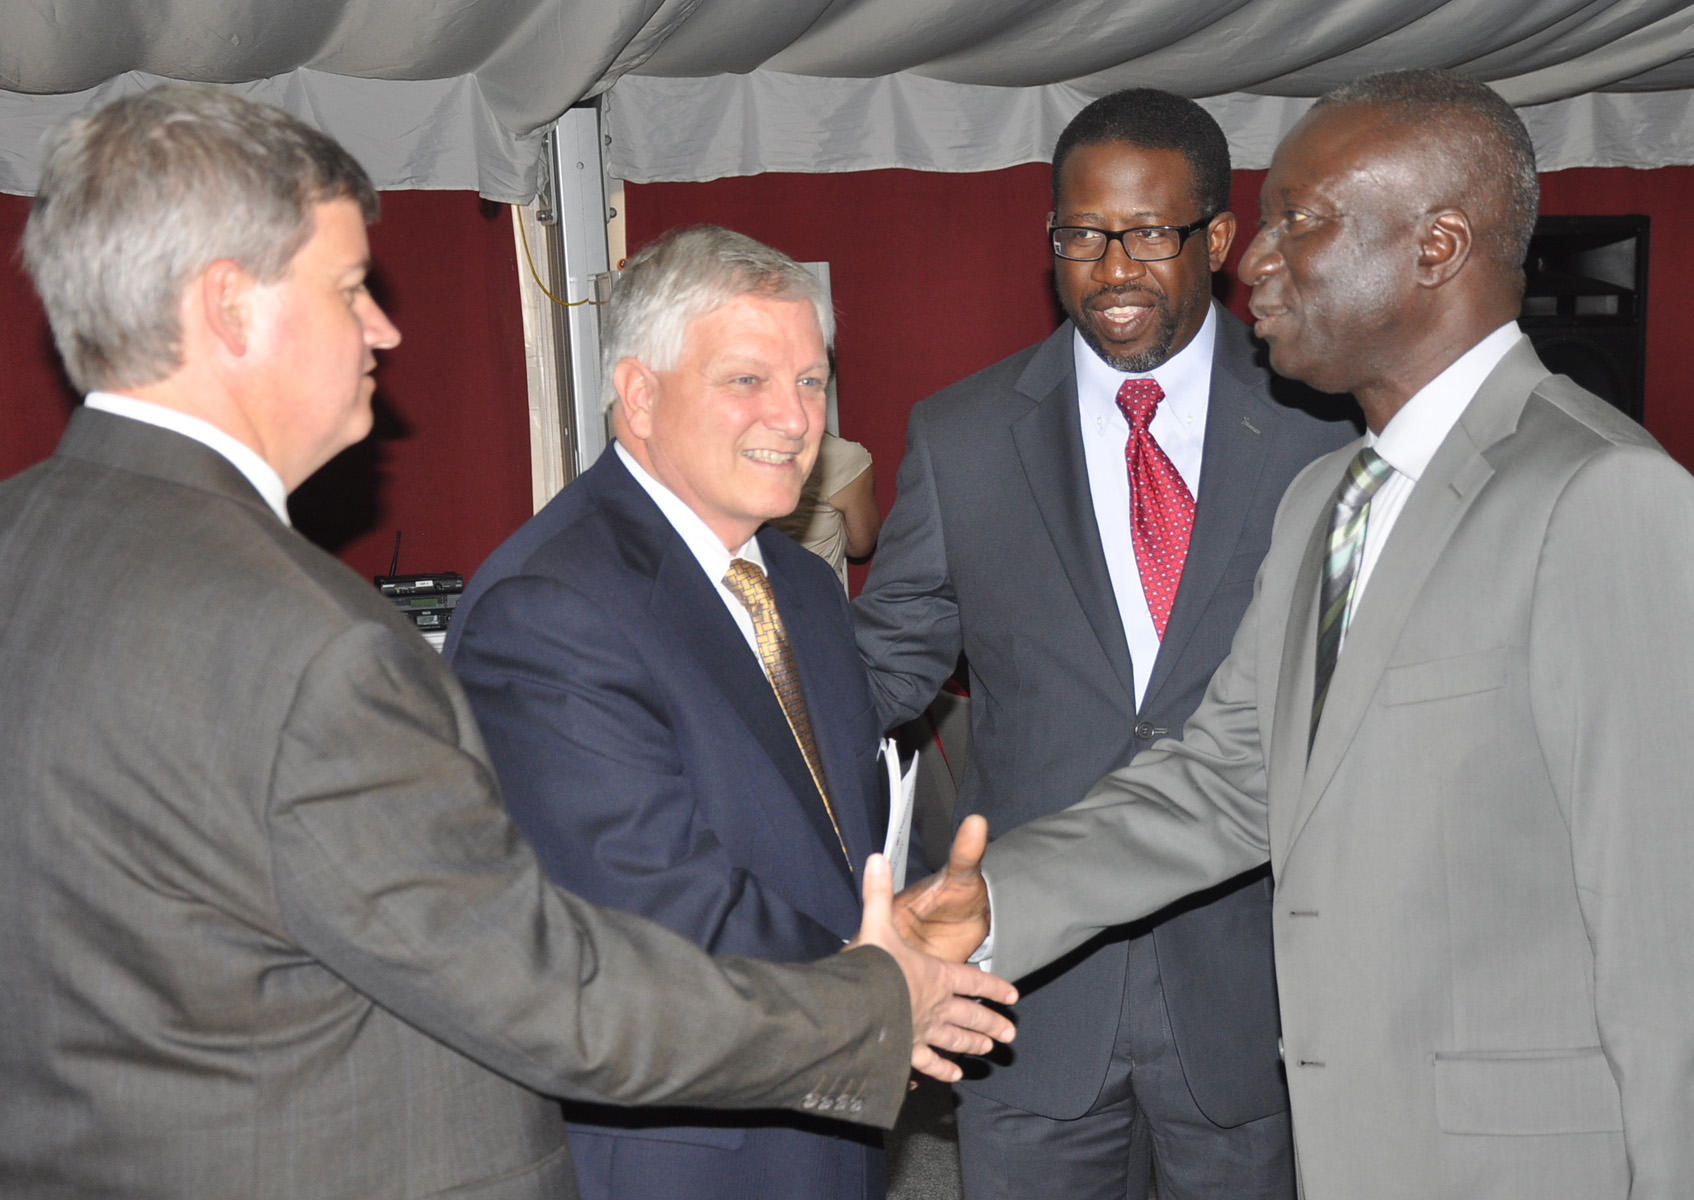 Virginia Tech official shakes hands with manager general of higher education in Senegal